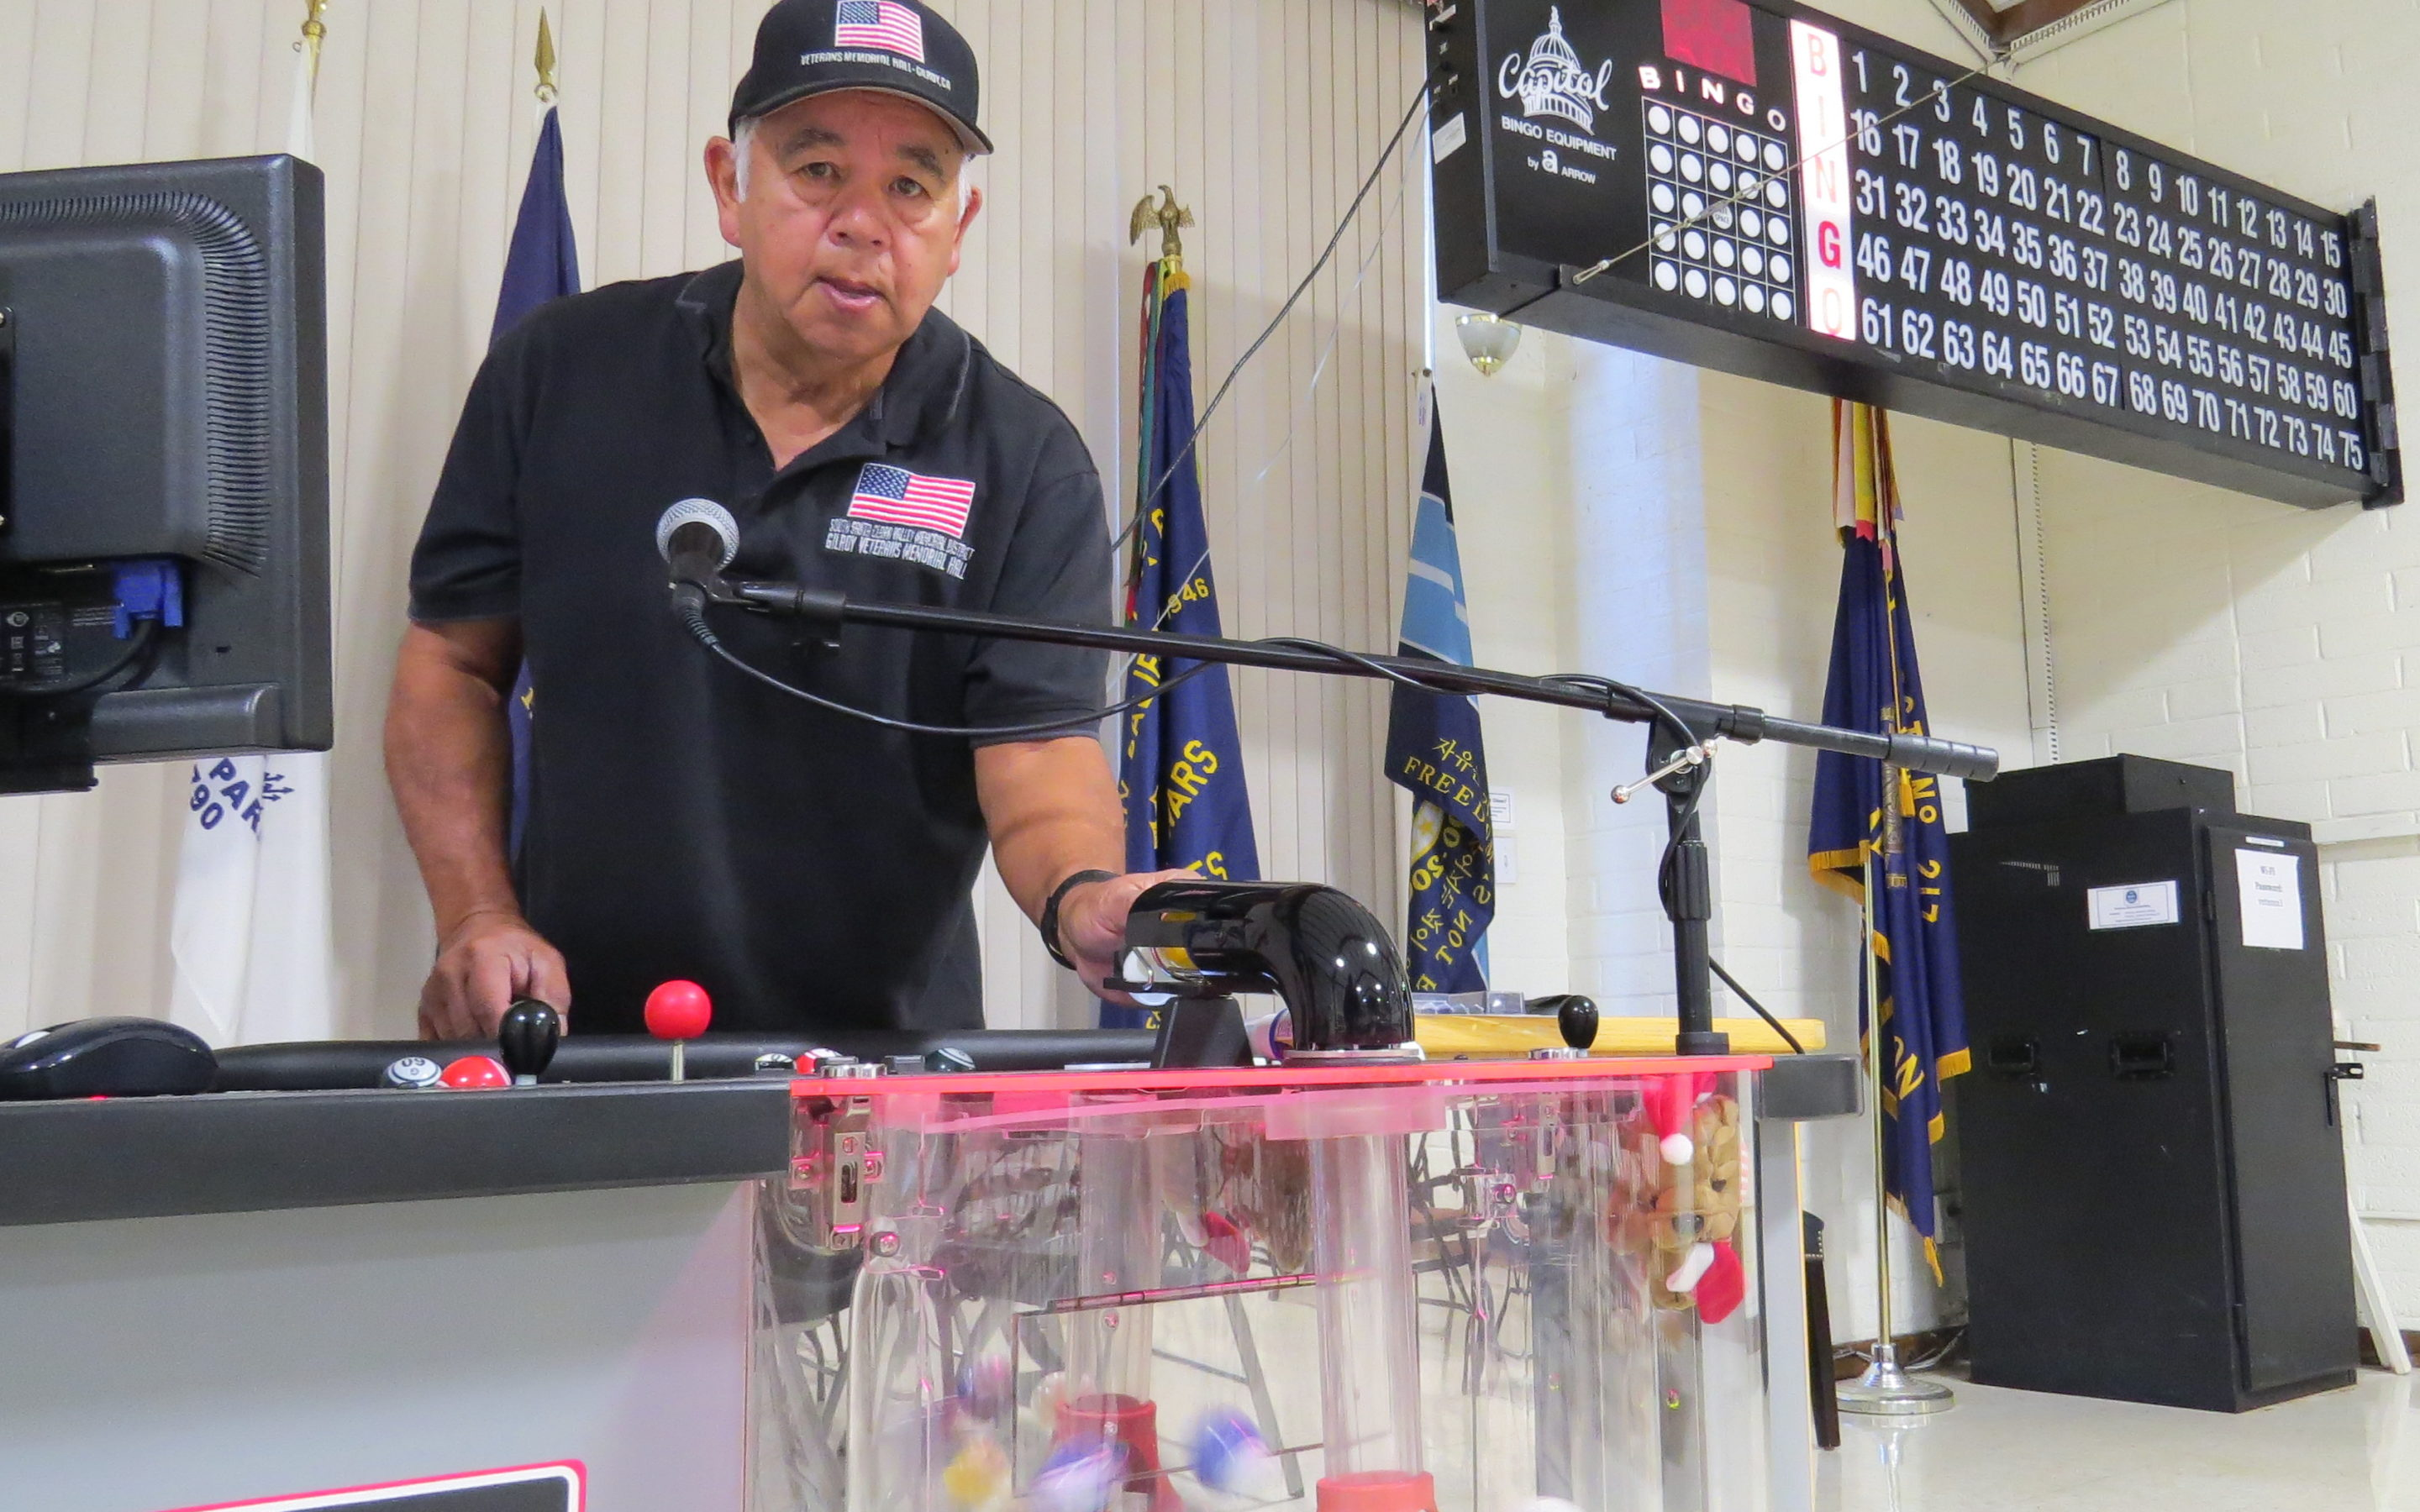 Main story: Veterans Memorial Building raising money for major remodel